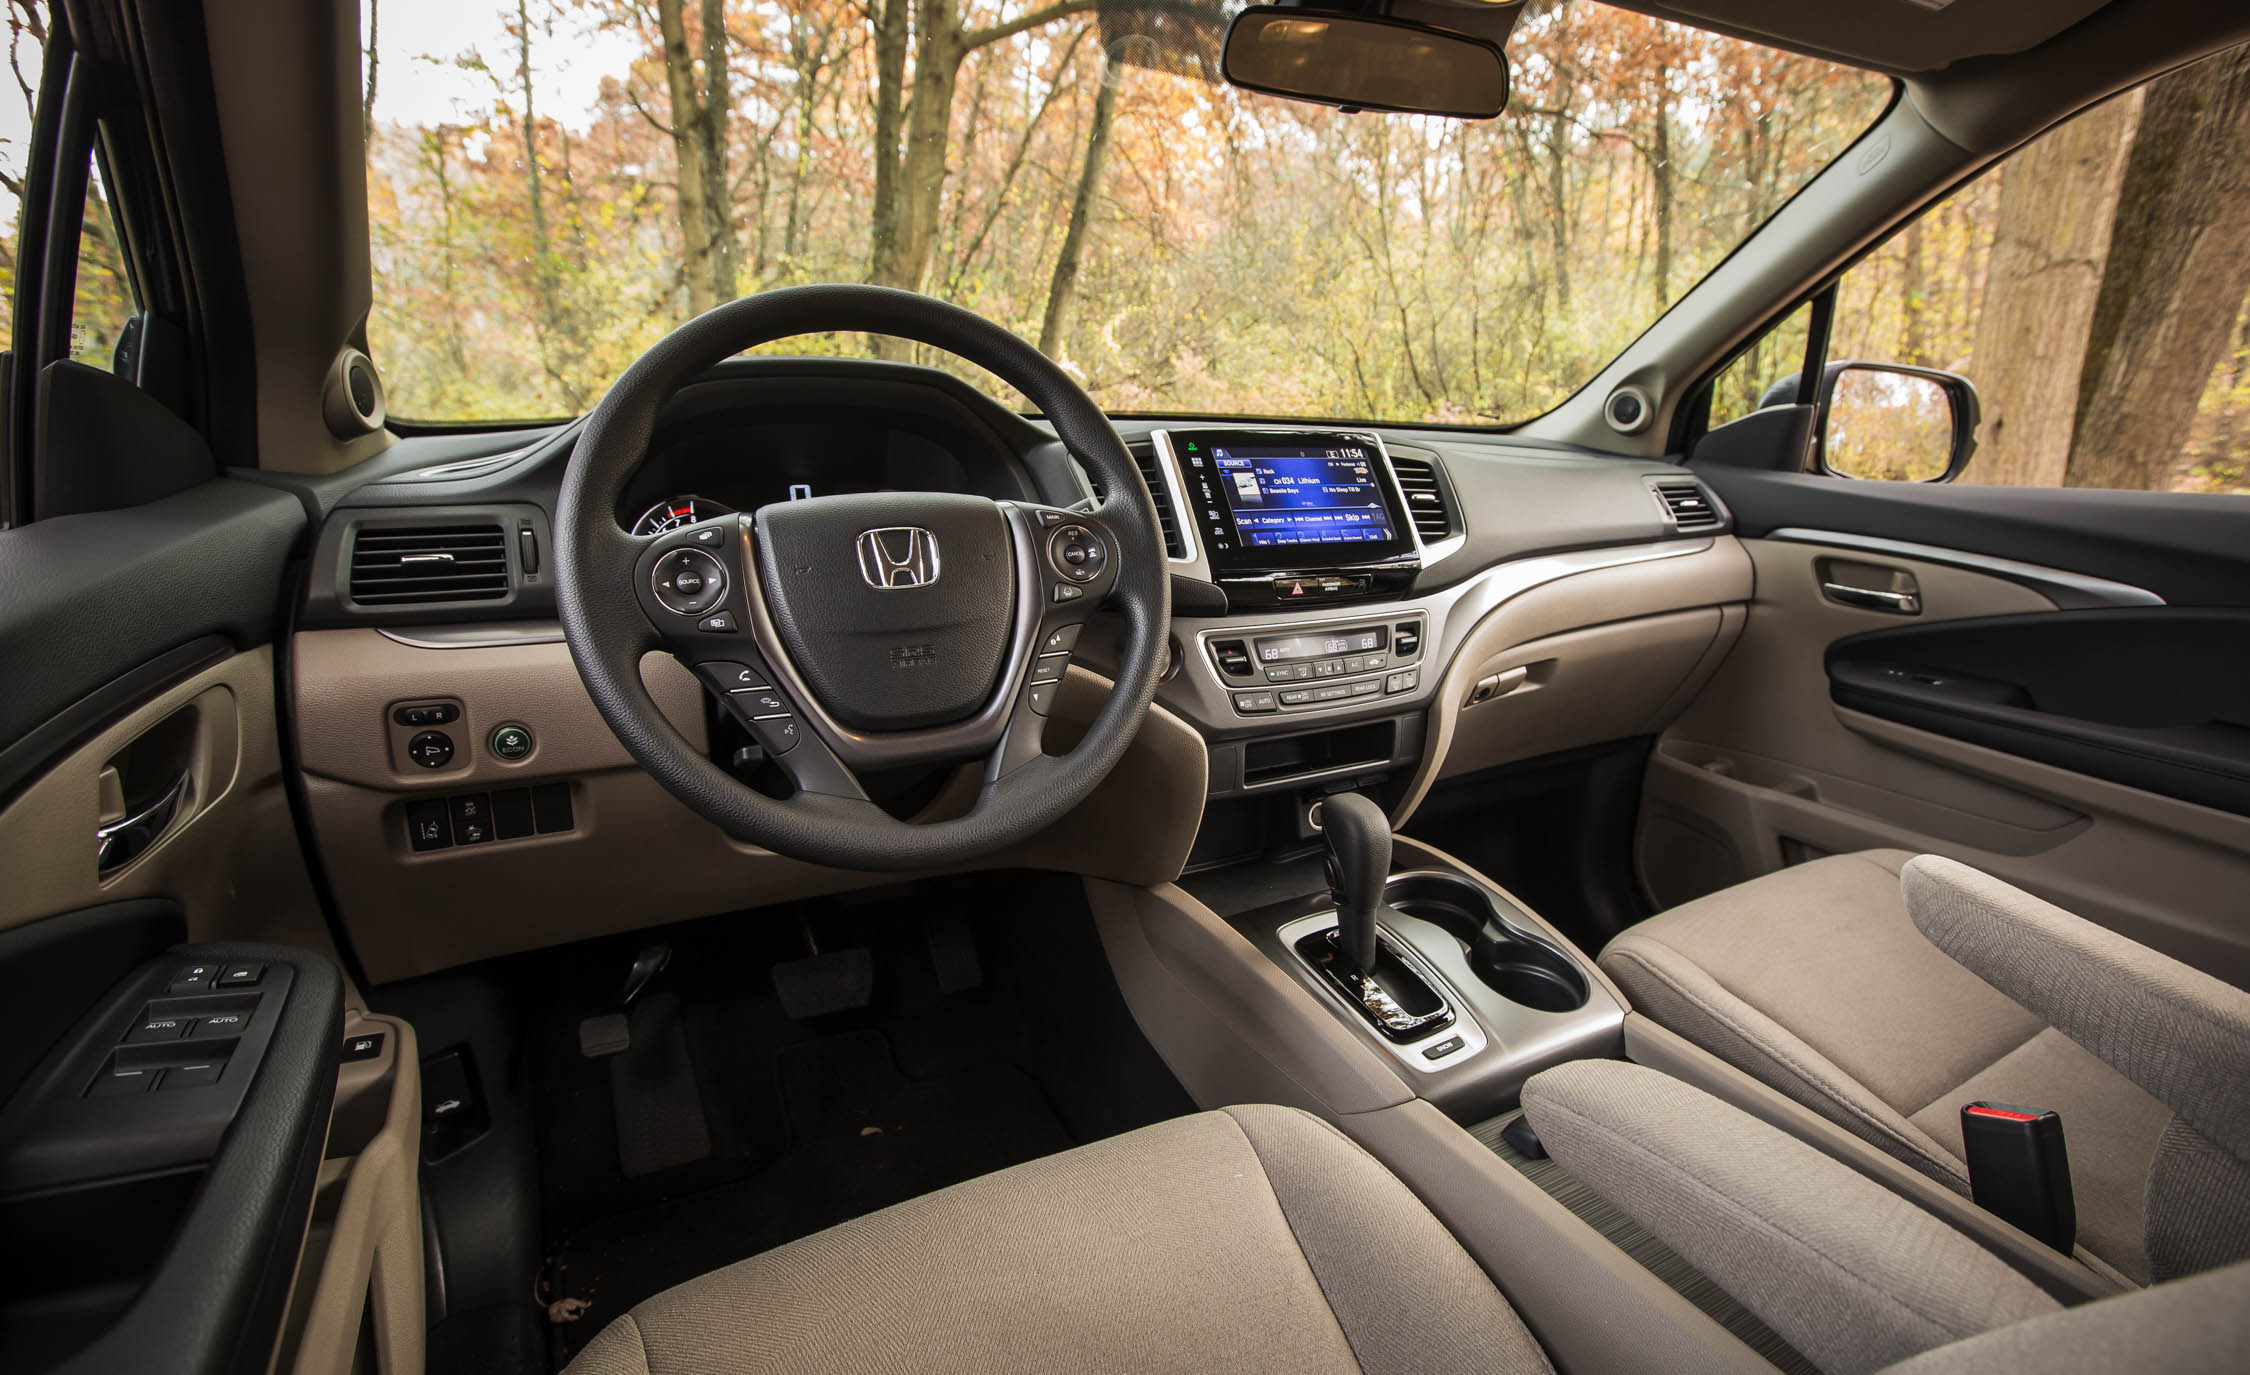 2016 Honda Pilot Interior Detail Wallpaper 23 1280x960 Pictures to pin ...